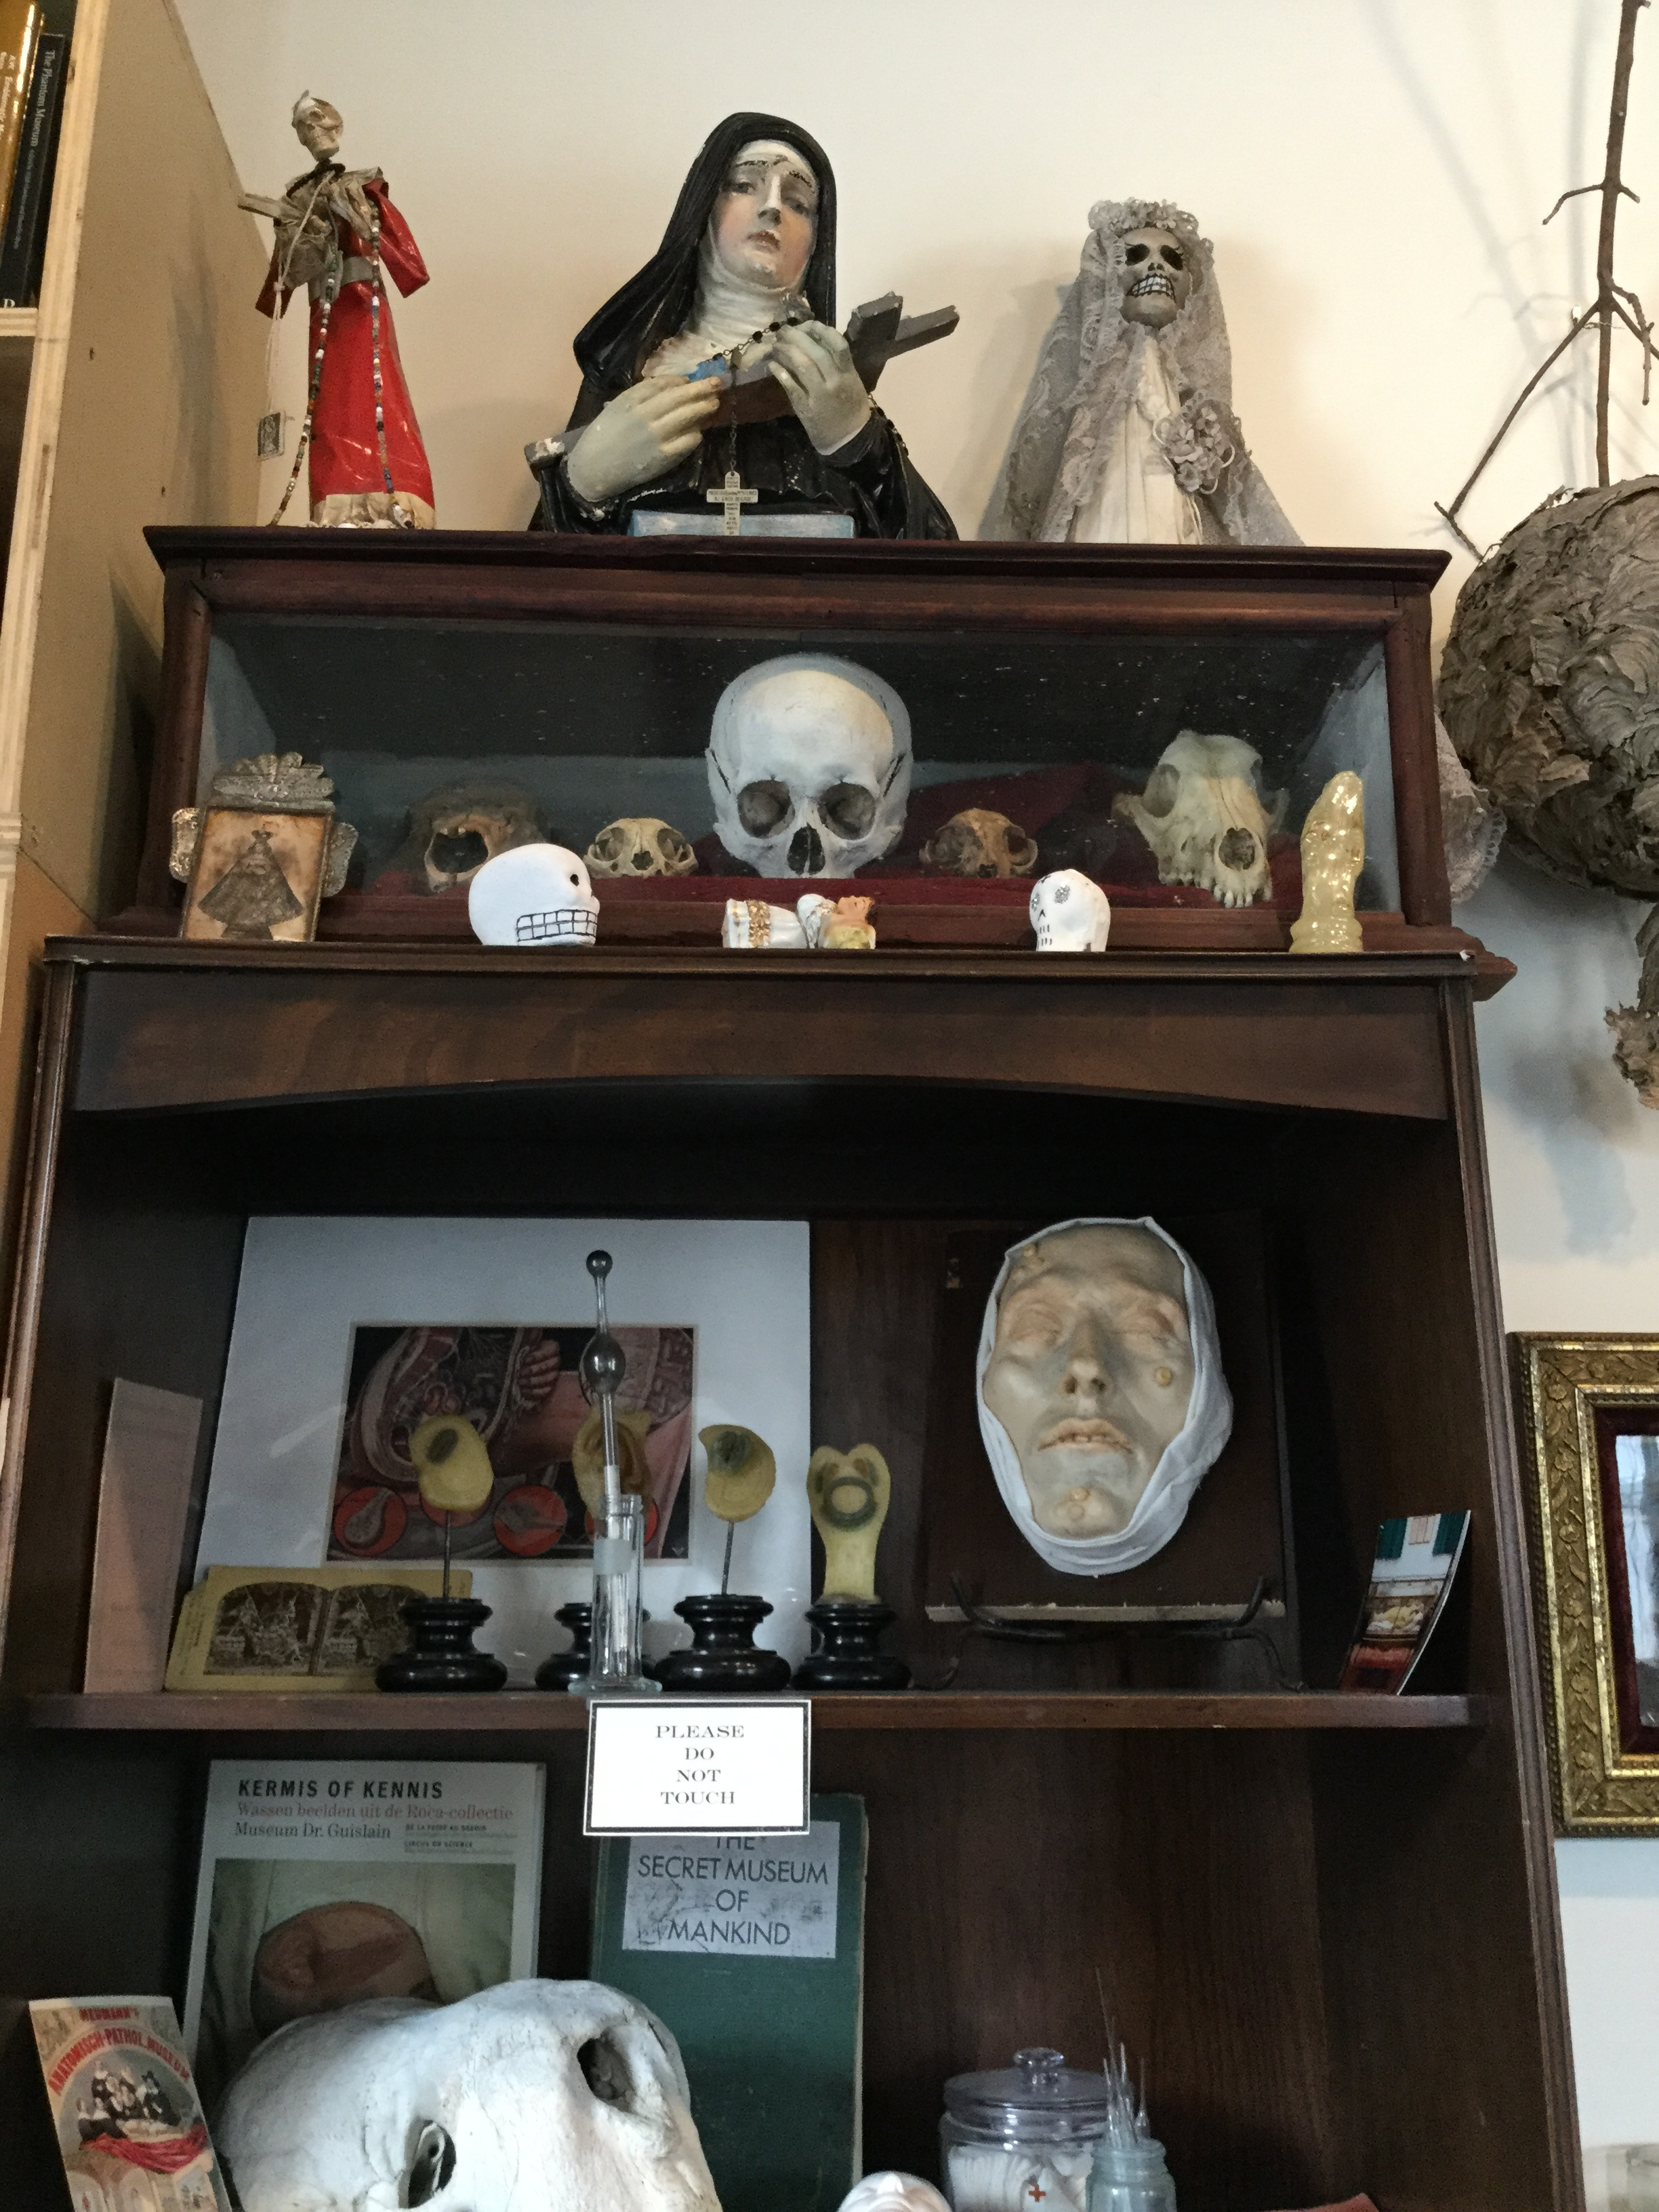 A cabinet from the Morbid Anatomy Museum - note the Catalina in wedding outfit in the top right hand corner.